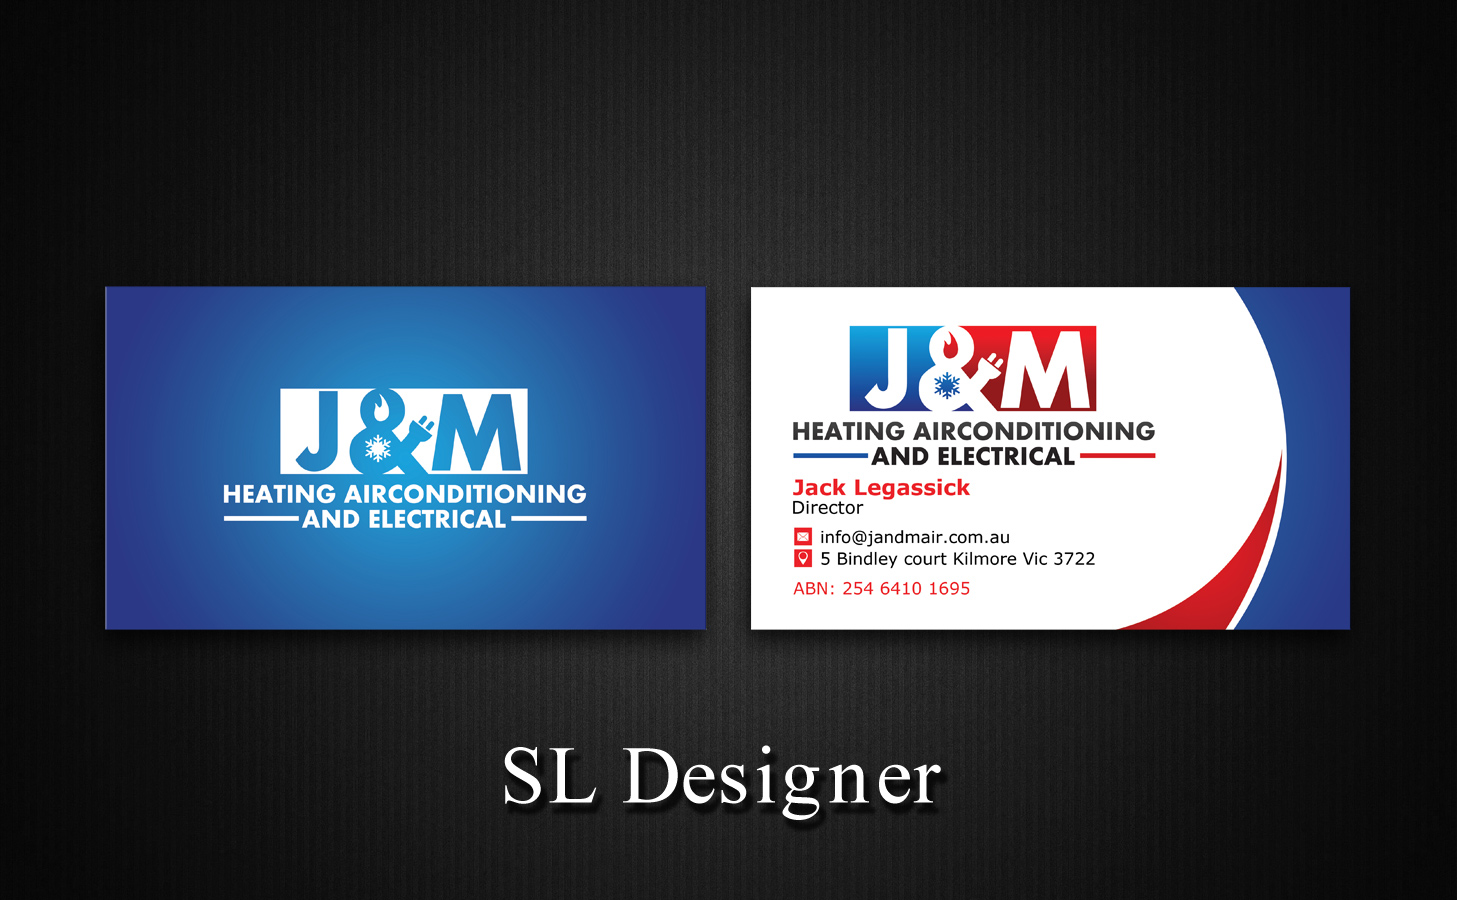 Bold serious trade business card design for jm heating bold serious trade business card design for jm heating airconditioning and electrical in australia design 7574310 reheart Image collections